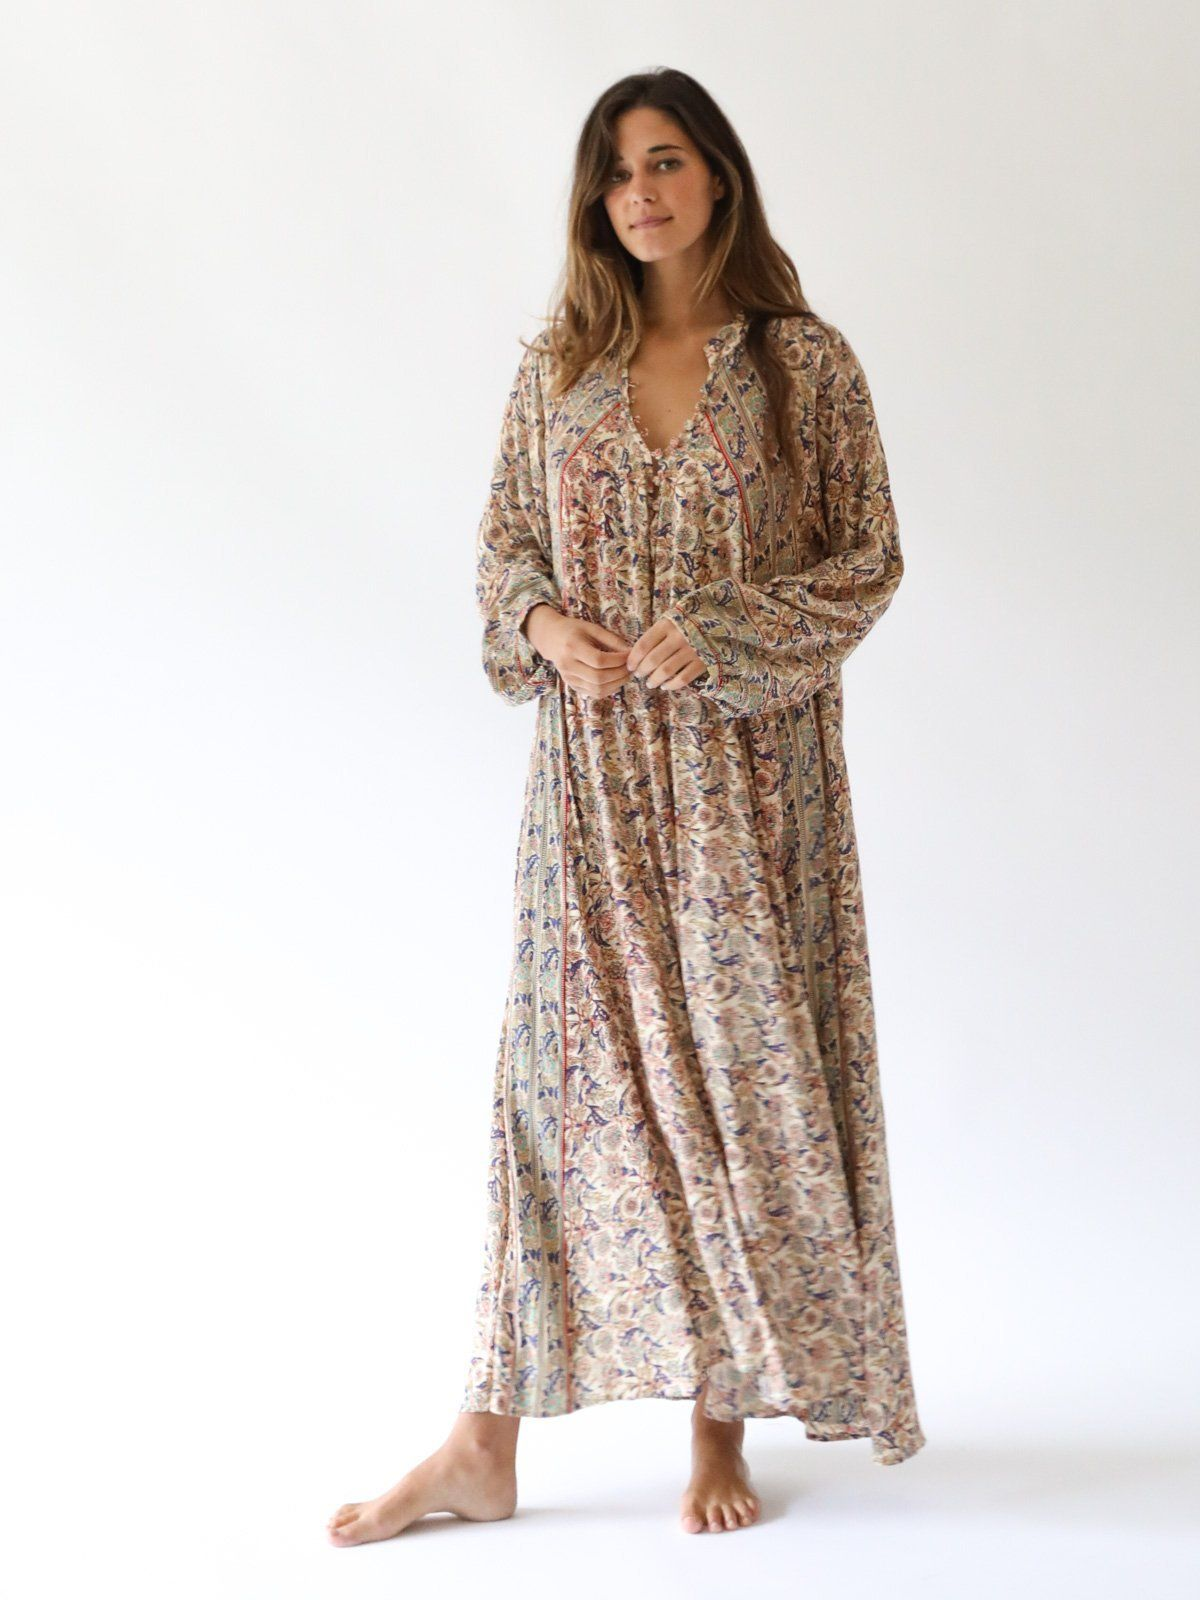 ca9b392068f NATALIE MARTIN - Fiore Maxi Dress in Goa Print